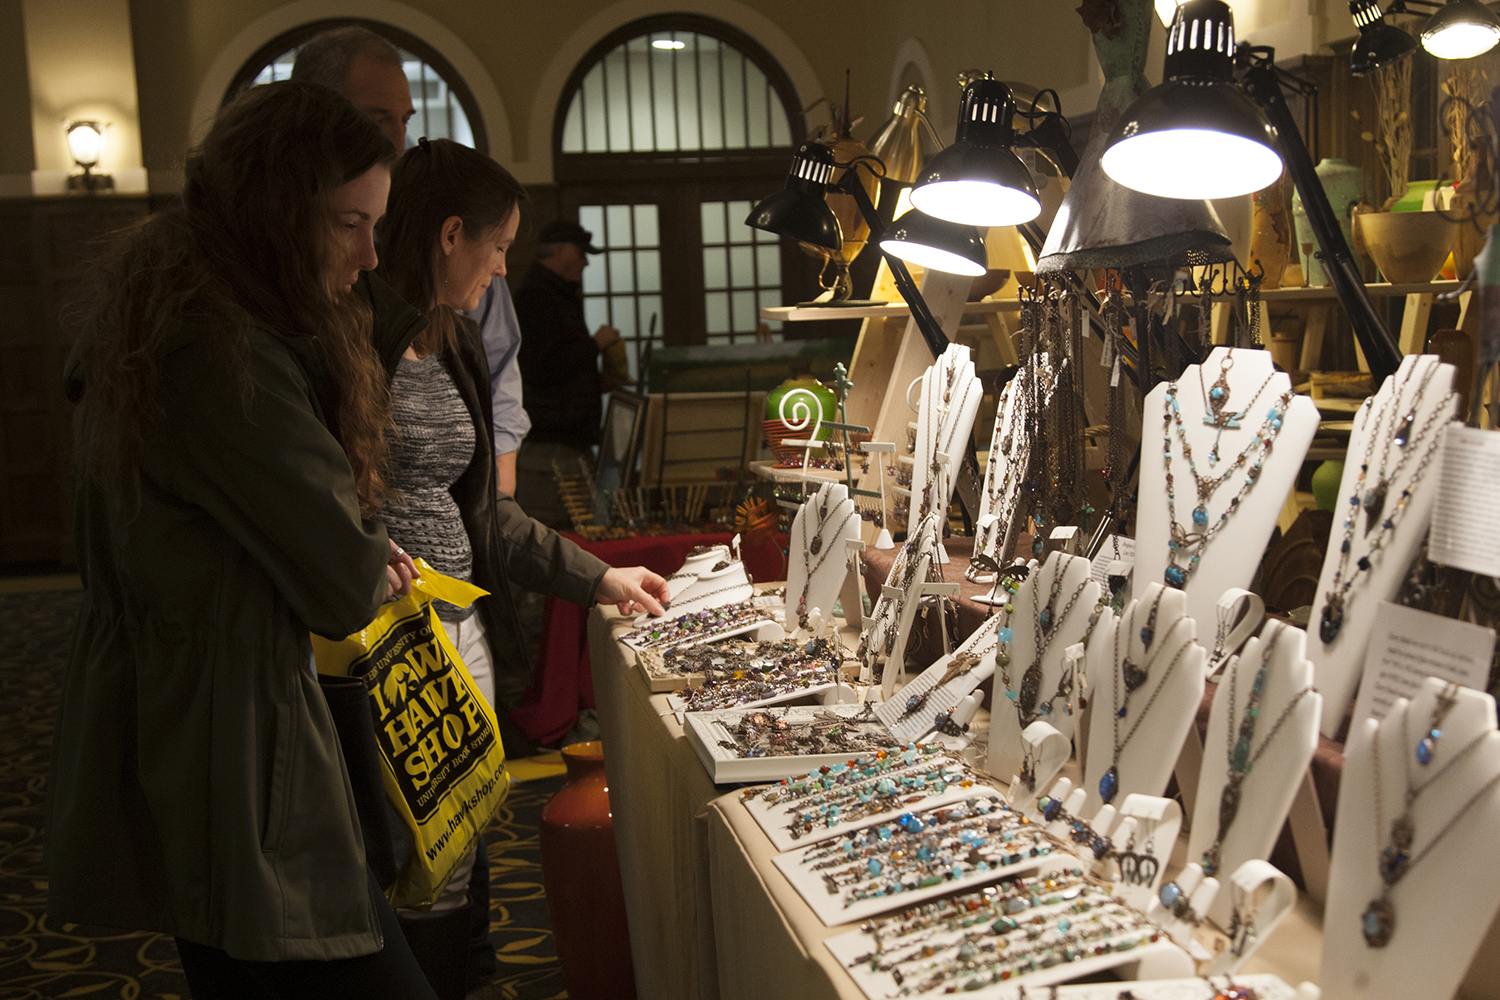 A family looks at jewelry during the Spring Art Expose in the IMU Main Lounge on Saturday Apr. 21, 2018. Put on by the UI Fine Arts Council, the Spring Art Expose celebrates local artists.